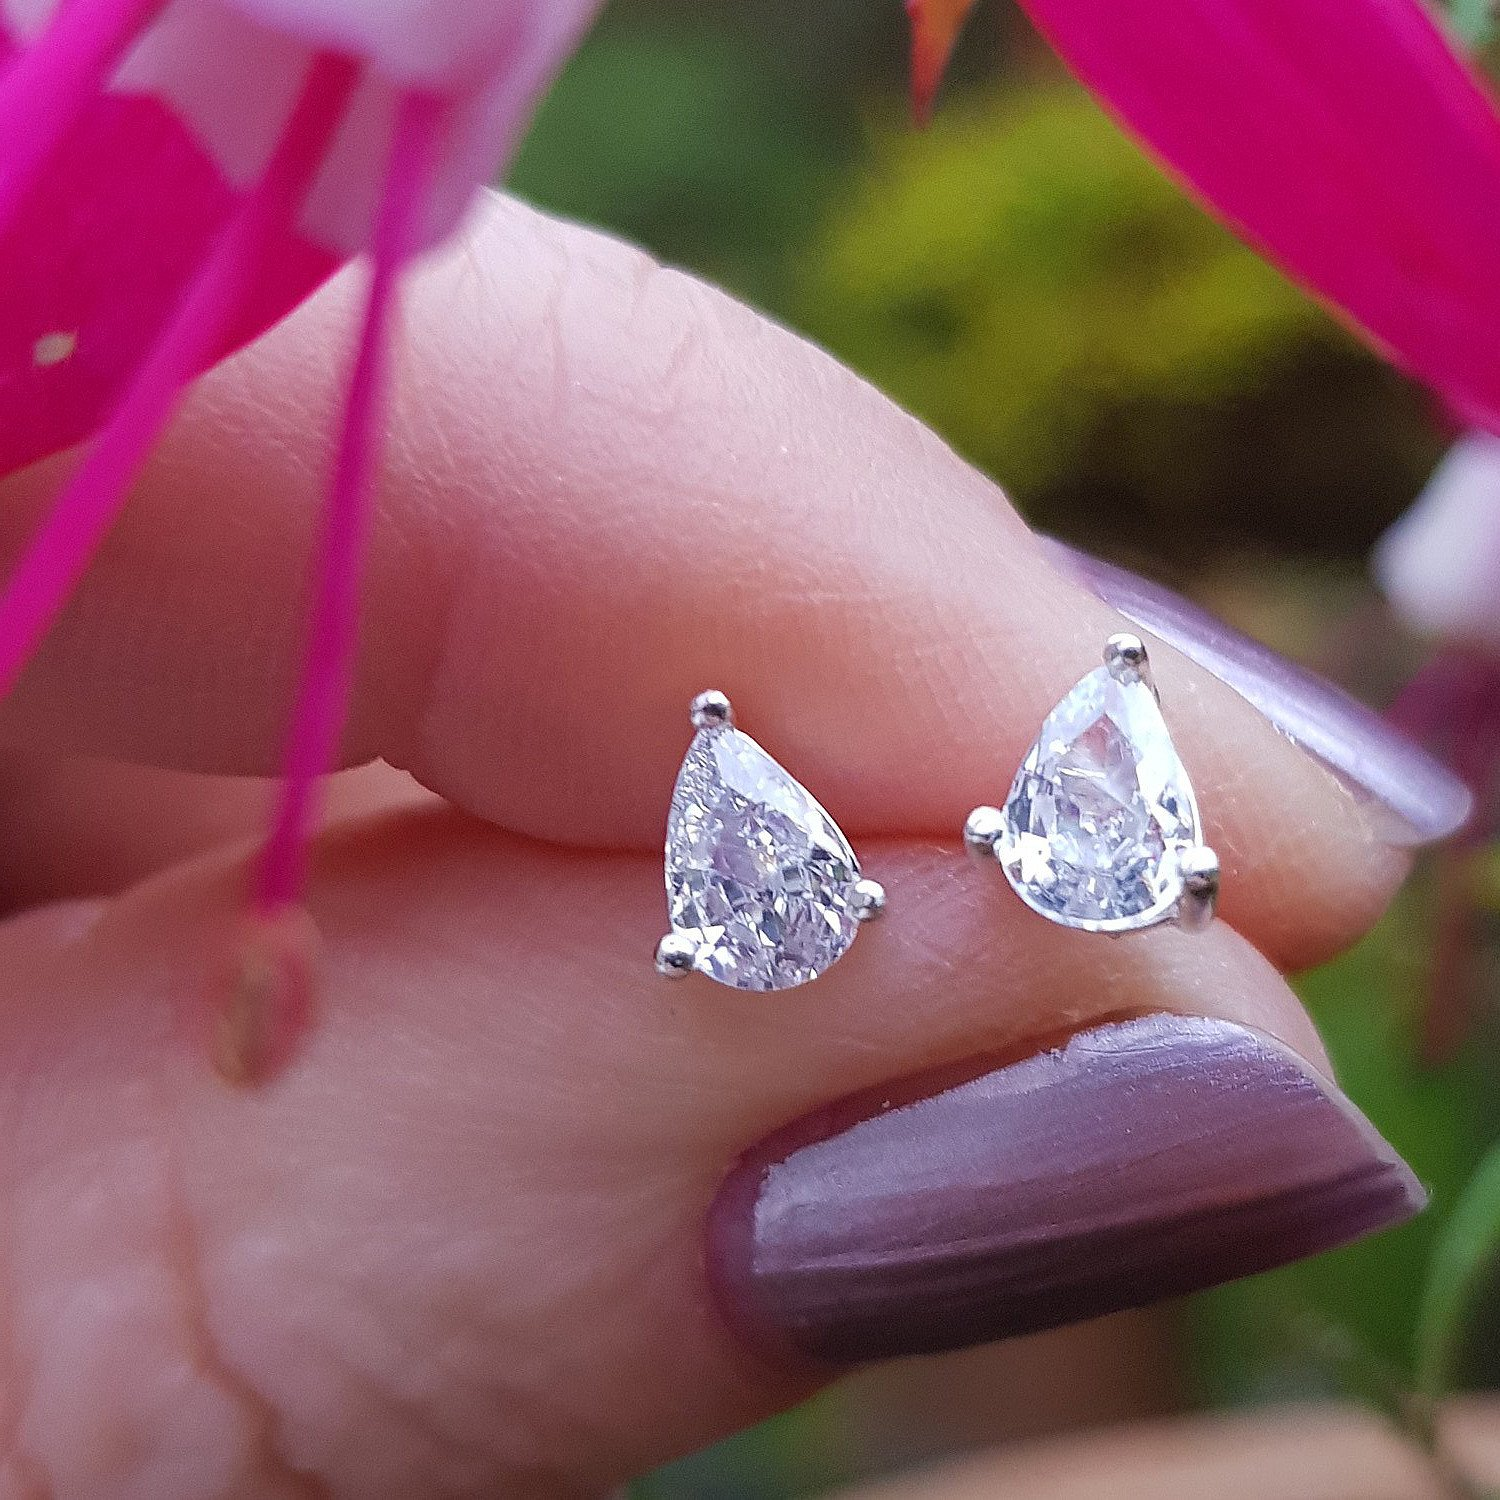 Teardrop cubic zirconia silver earrings - 5mm x 6.5mm - £13.00 from Callibeau Jewellery